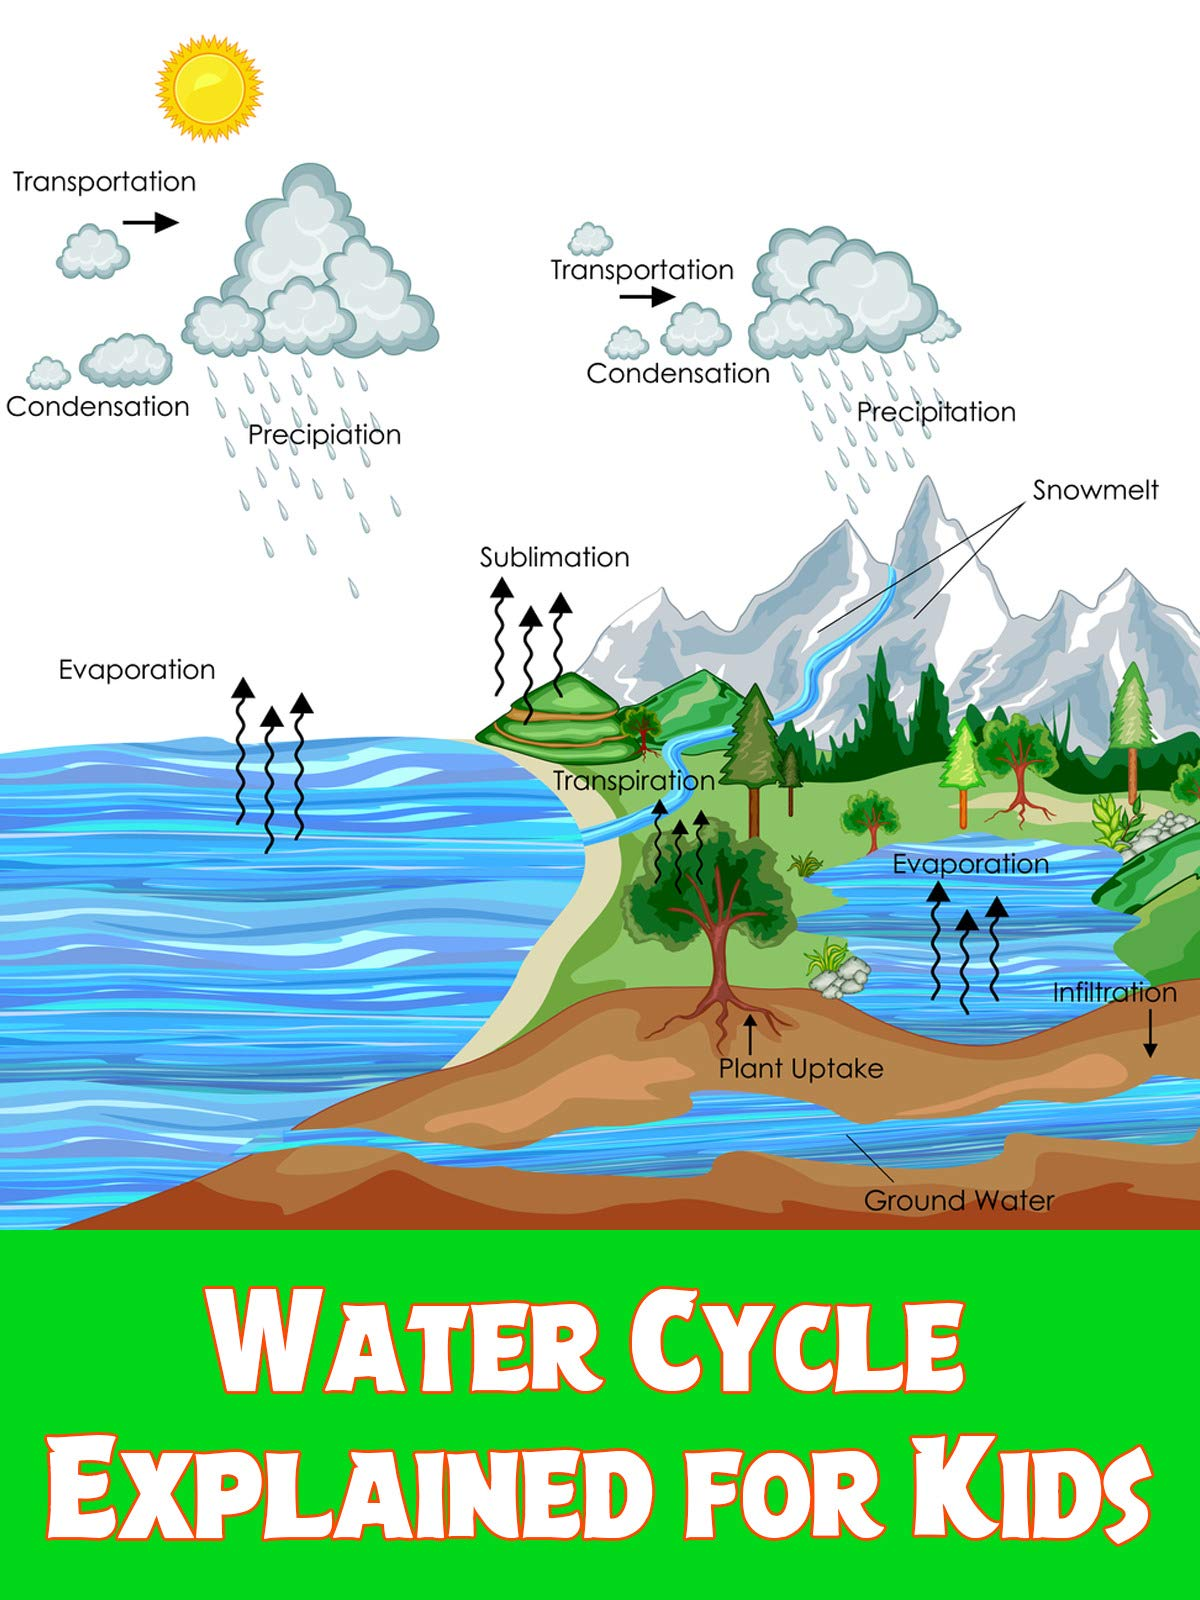 Water Cycle Explained for Kids